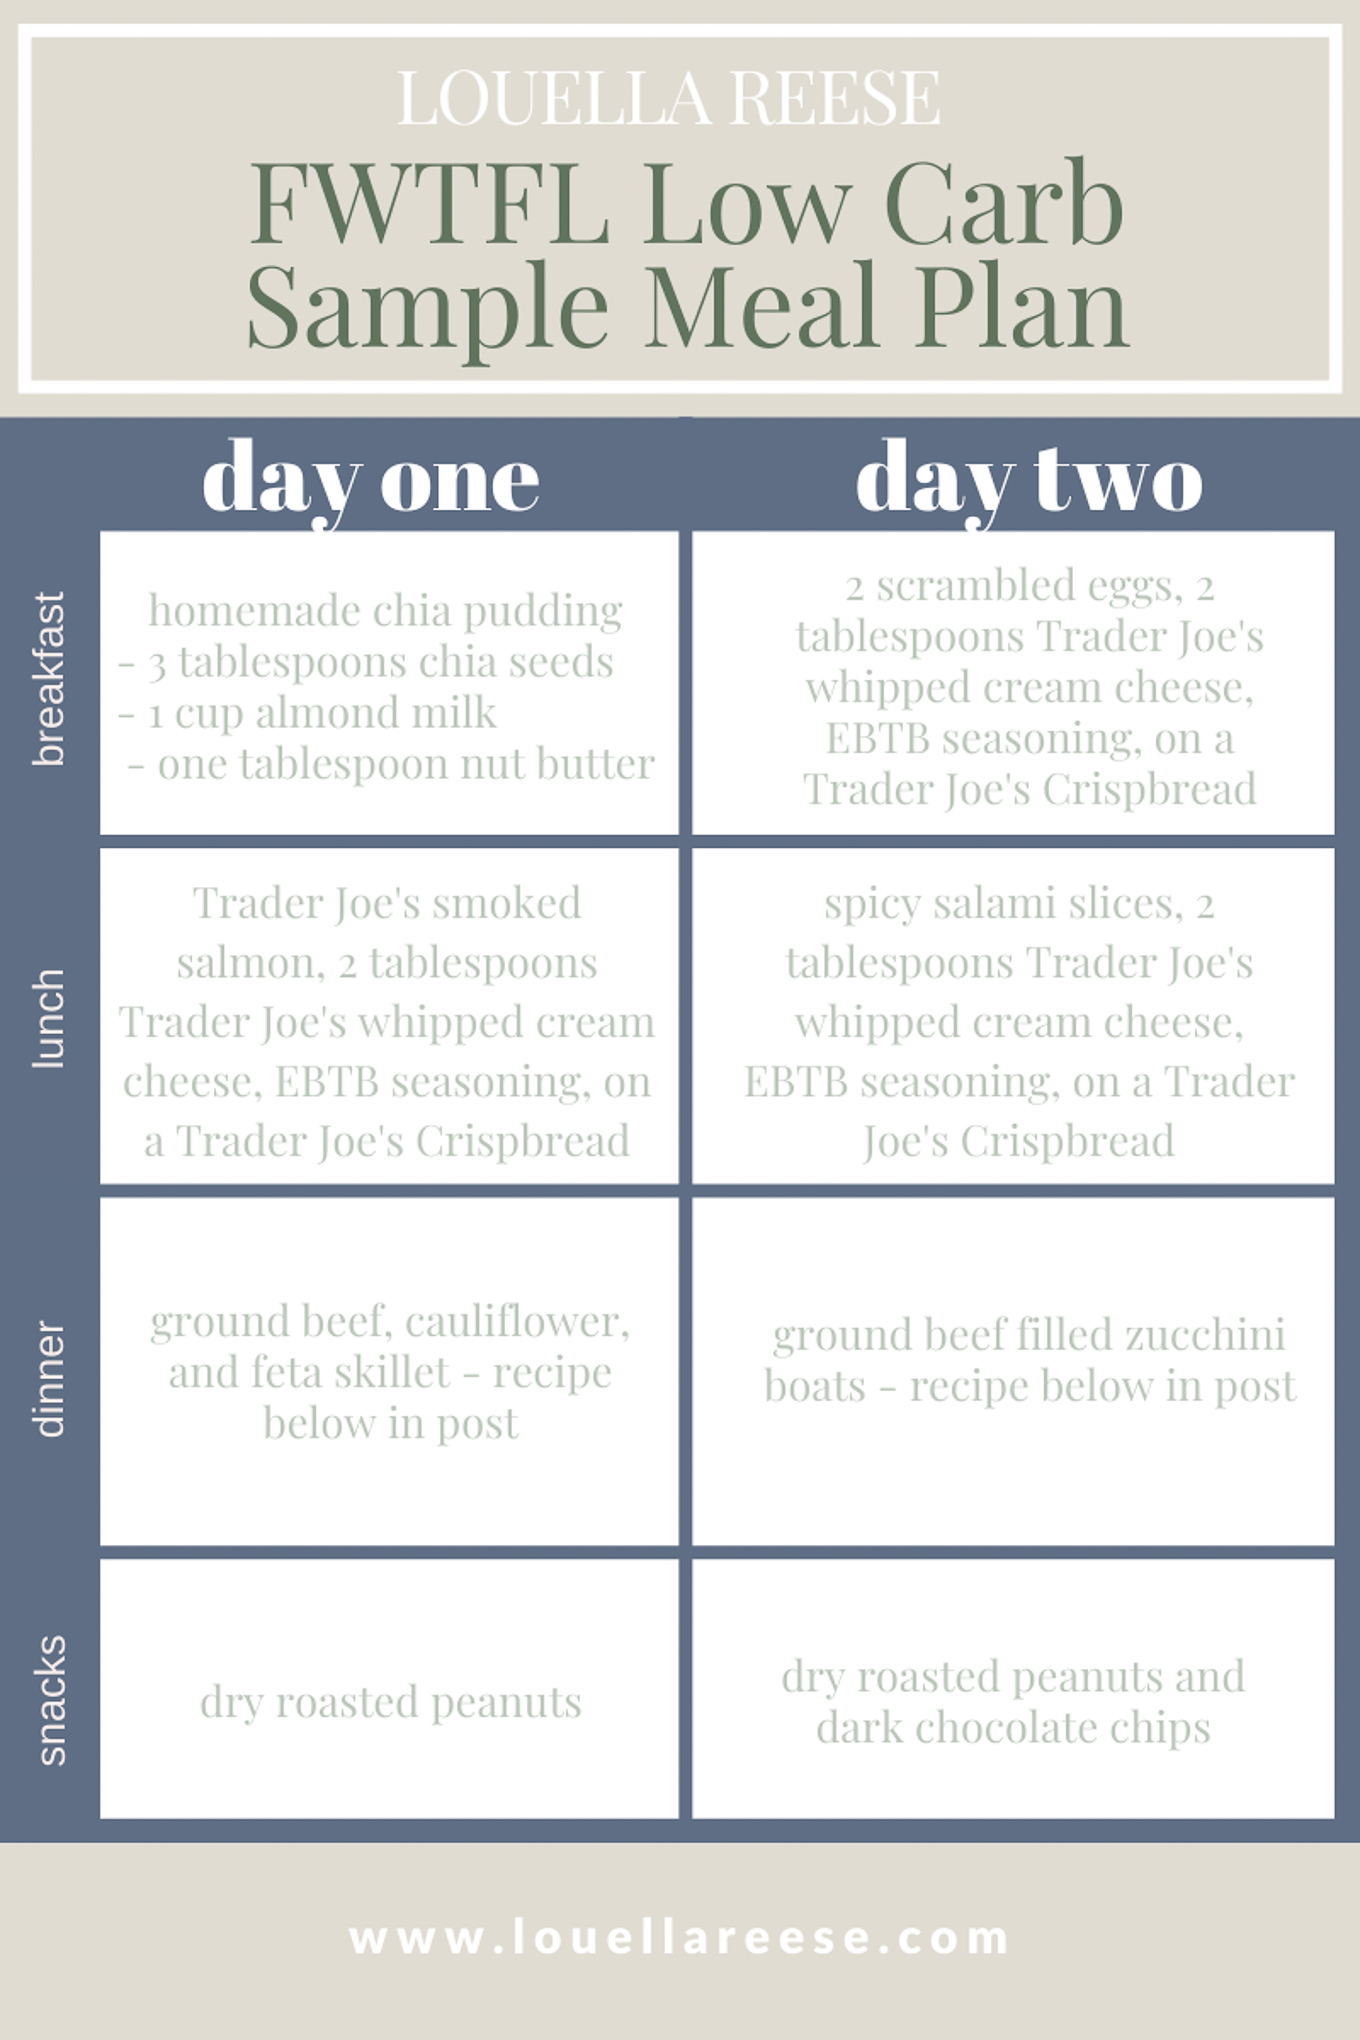 FWTFL Low Carb Days Meal Plan | Low Carb Day Meal Ideas featured on Louella Reese